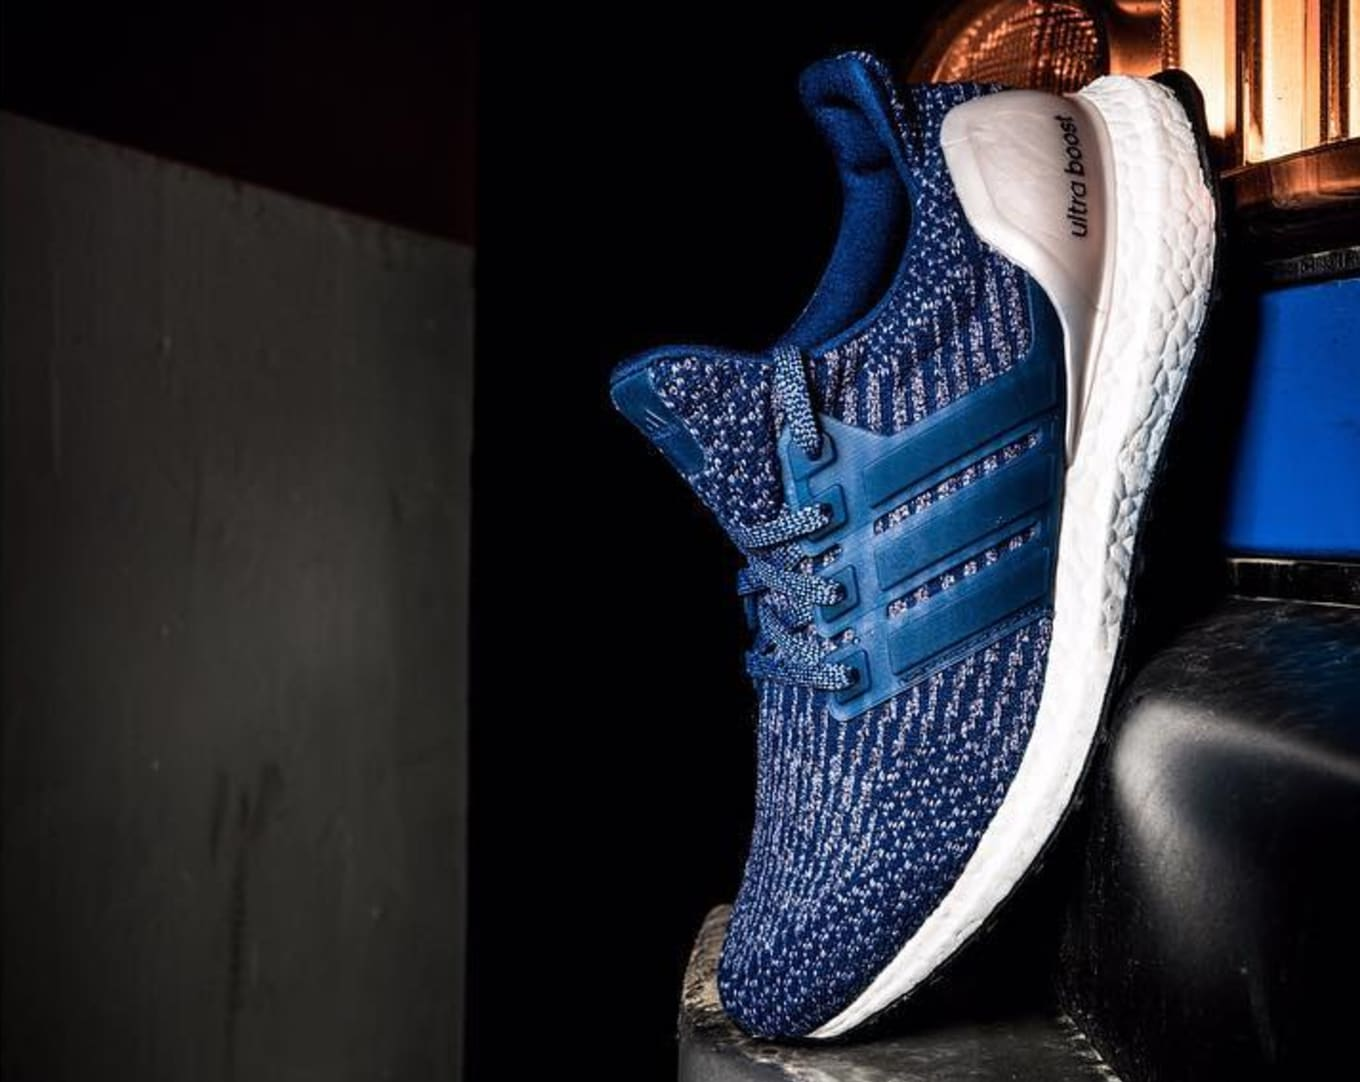 bf4897491 ... 3 0 NAVY WHITE  Another leak of the Ultra Boost 3.0. adidas nyc ...